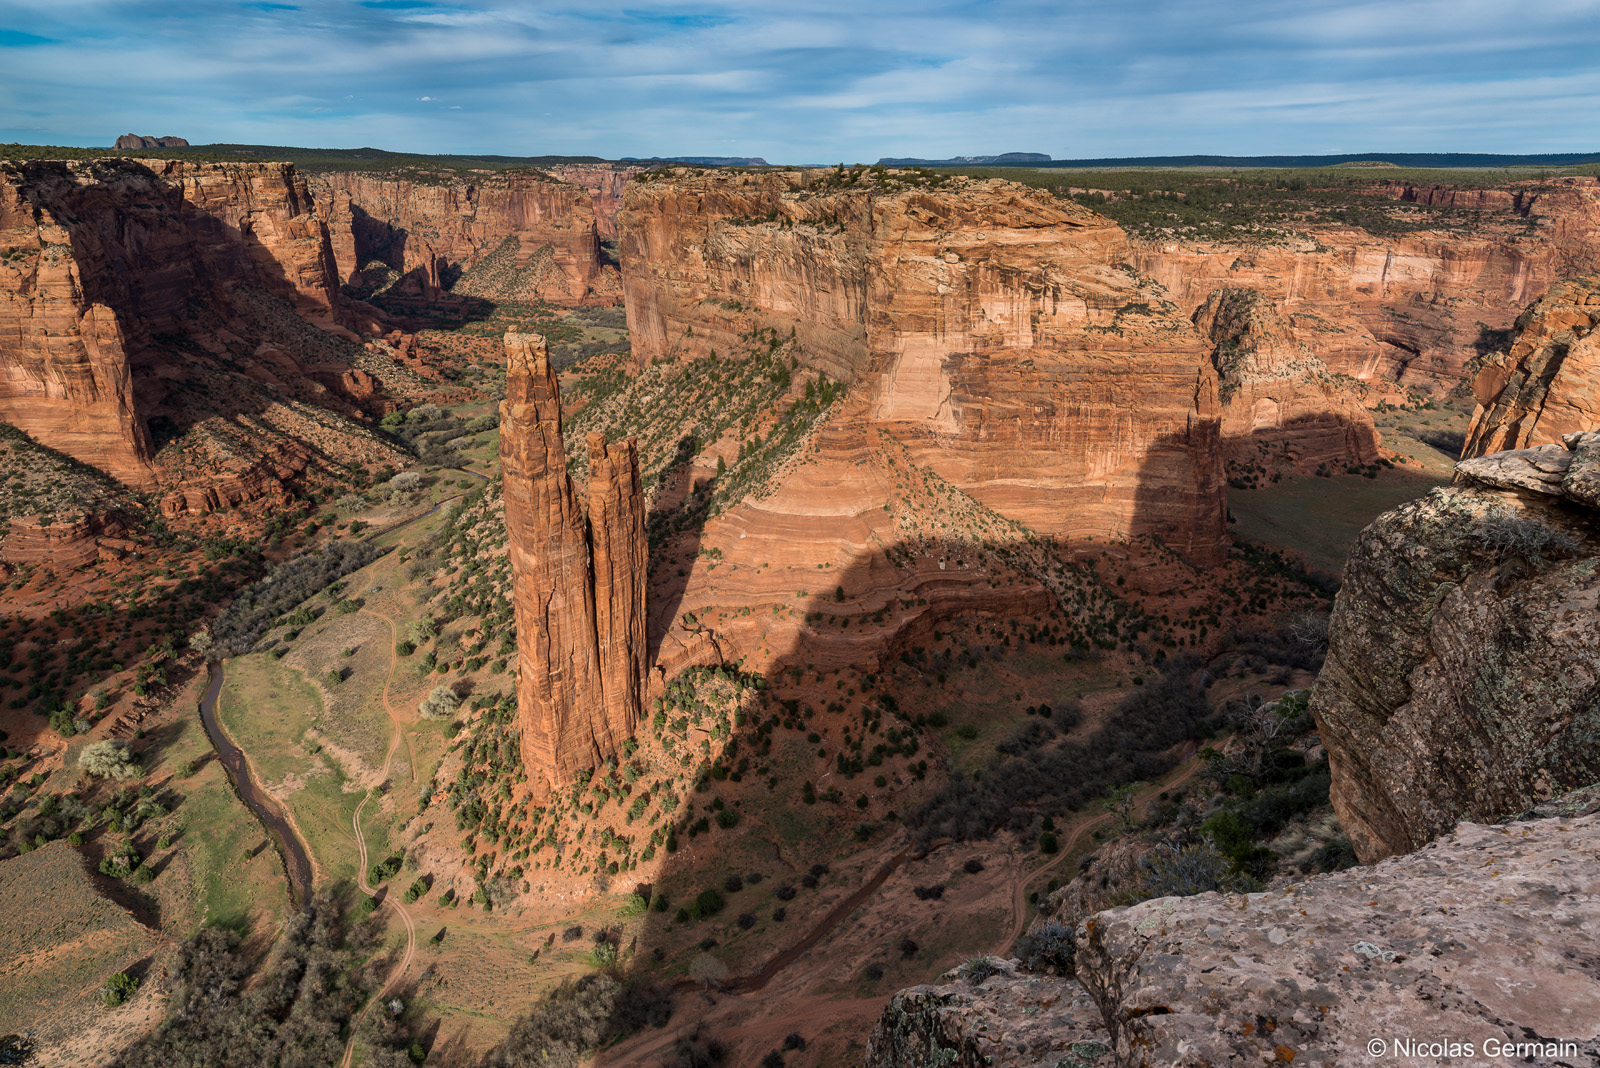 Spider Rock, sur la rive sud du Canyon de Chelly